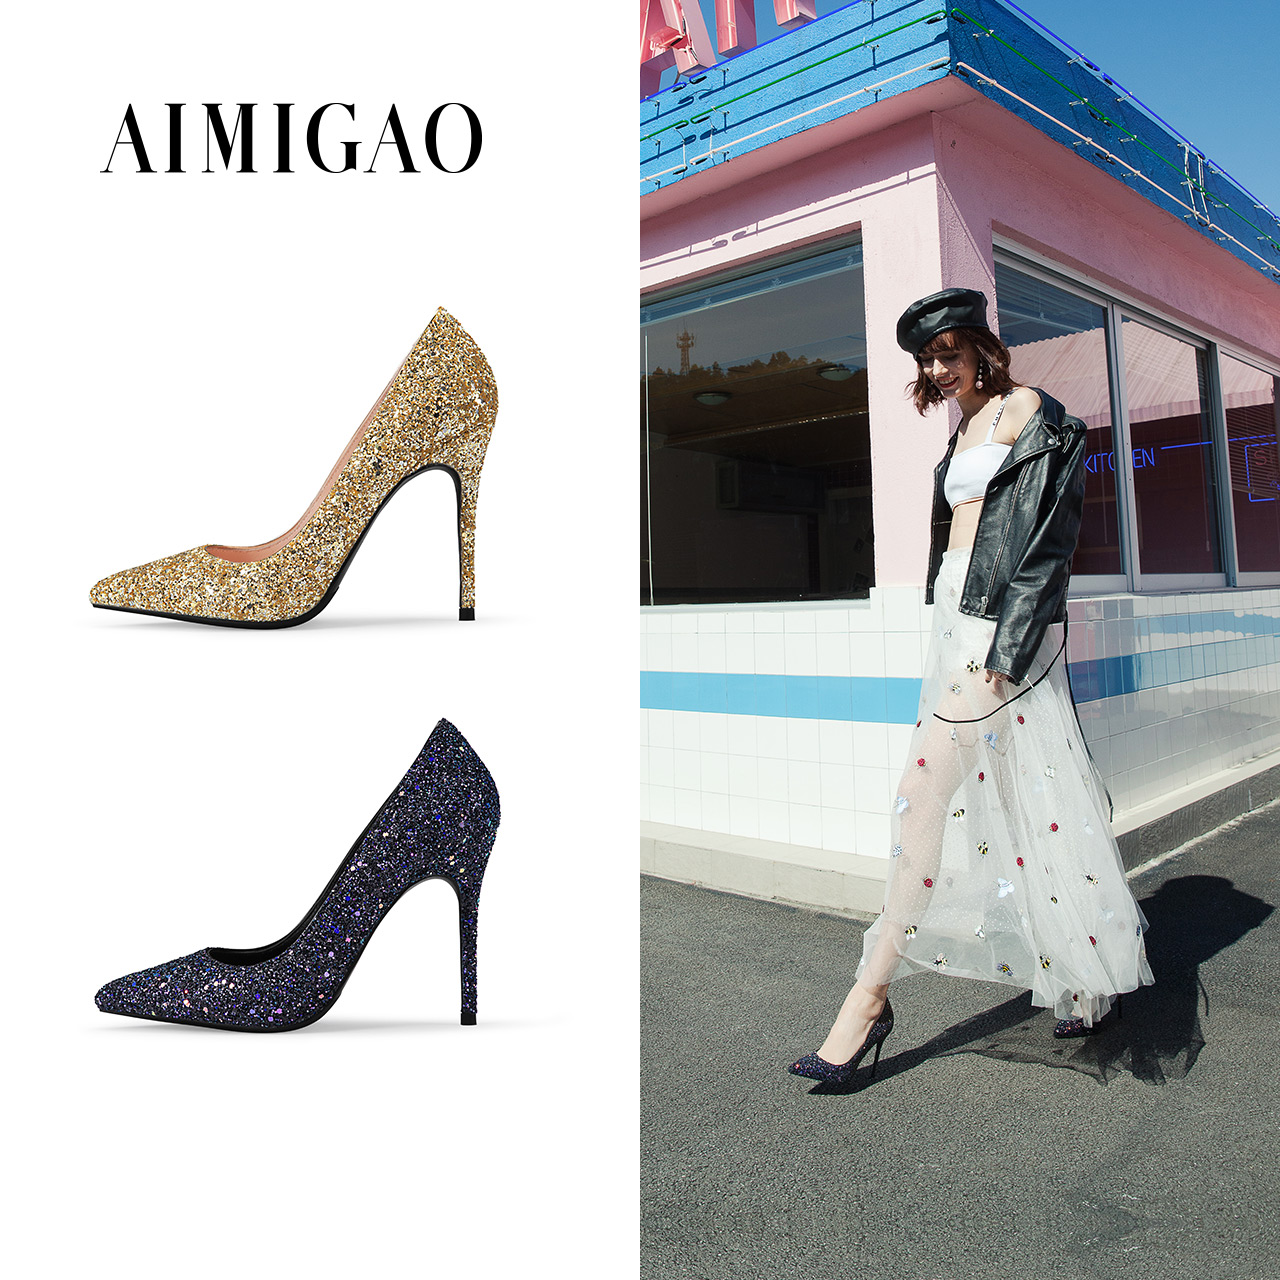 AIMIGAO Pointed Toe Women Glittering Pumps Shoes Glitter Sexy High Heels Bling Fashion Wedding Party Shoes Pumps 2018 Spring New eiswelt shoes spring summer fashion rivet flats party pointed flock women shoes wedding shoes glitter flat ladies shoes zjf84